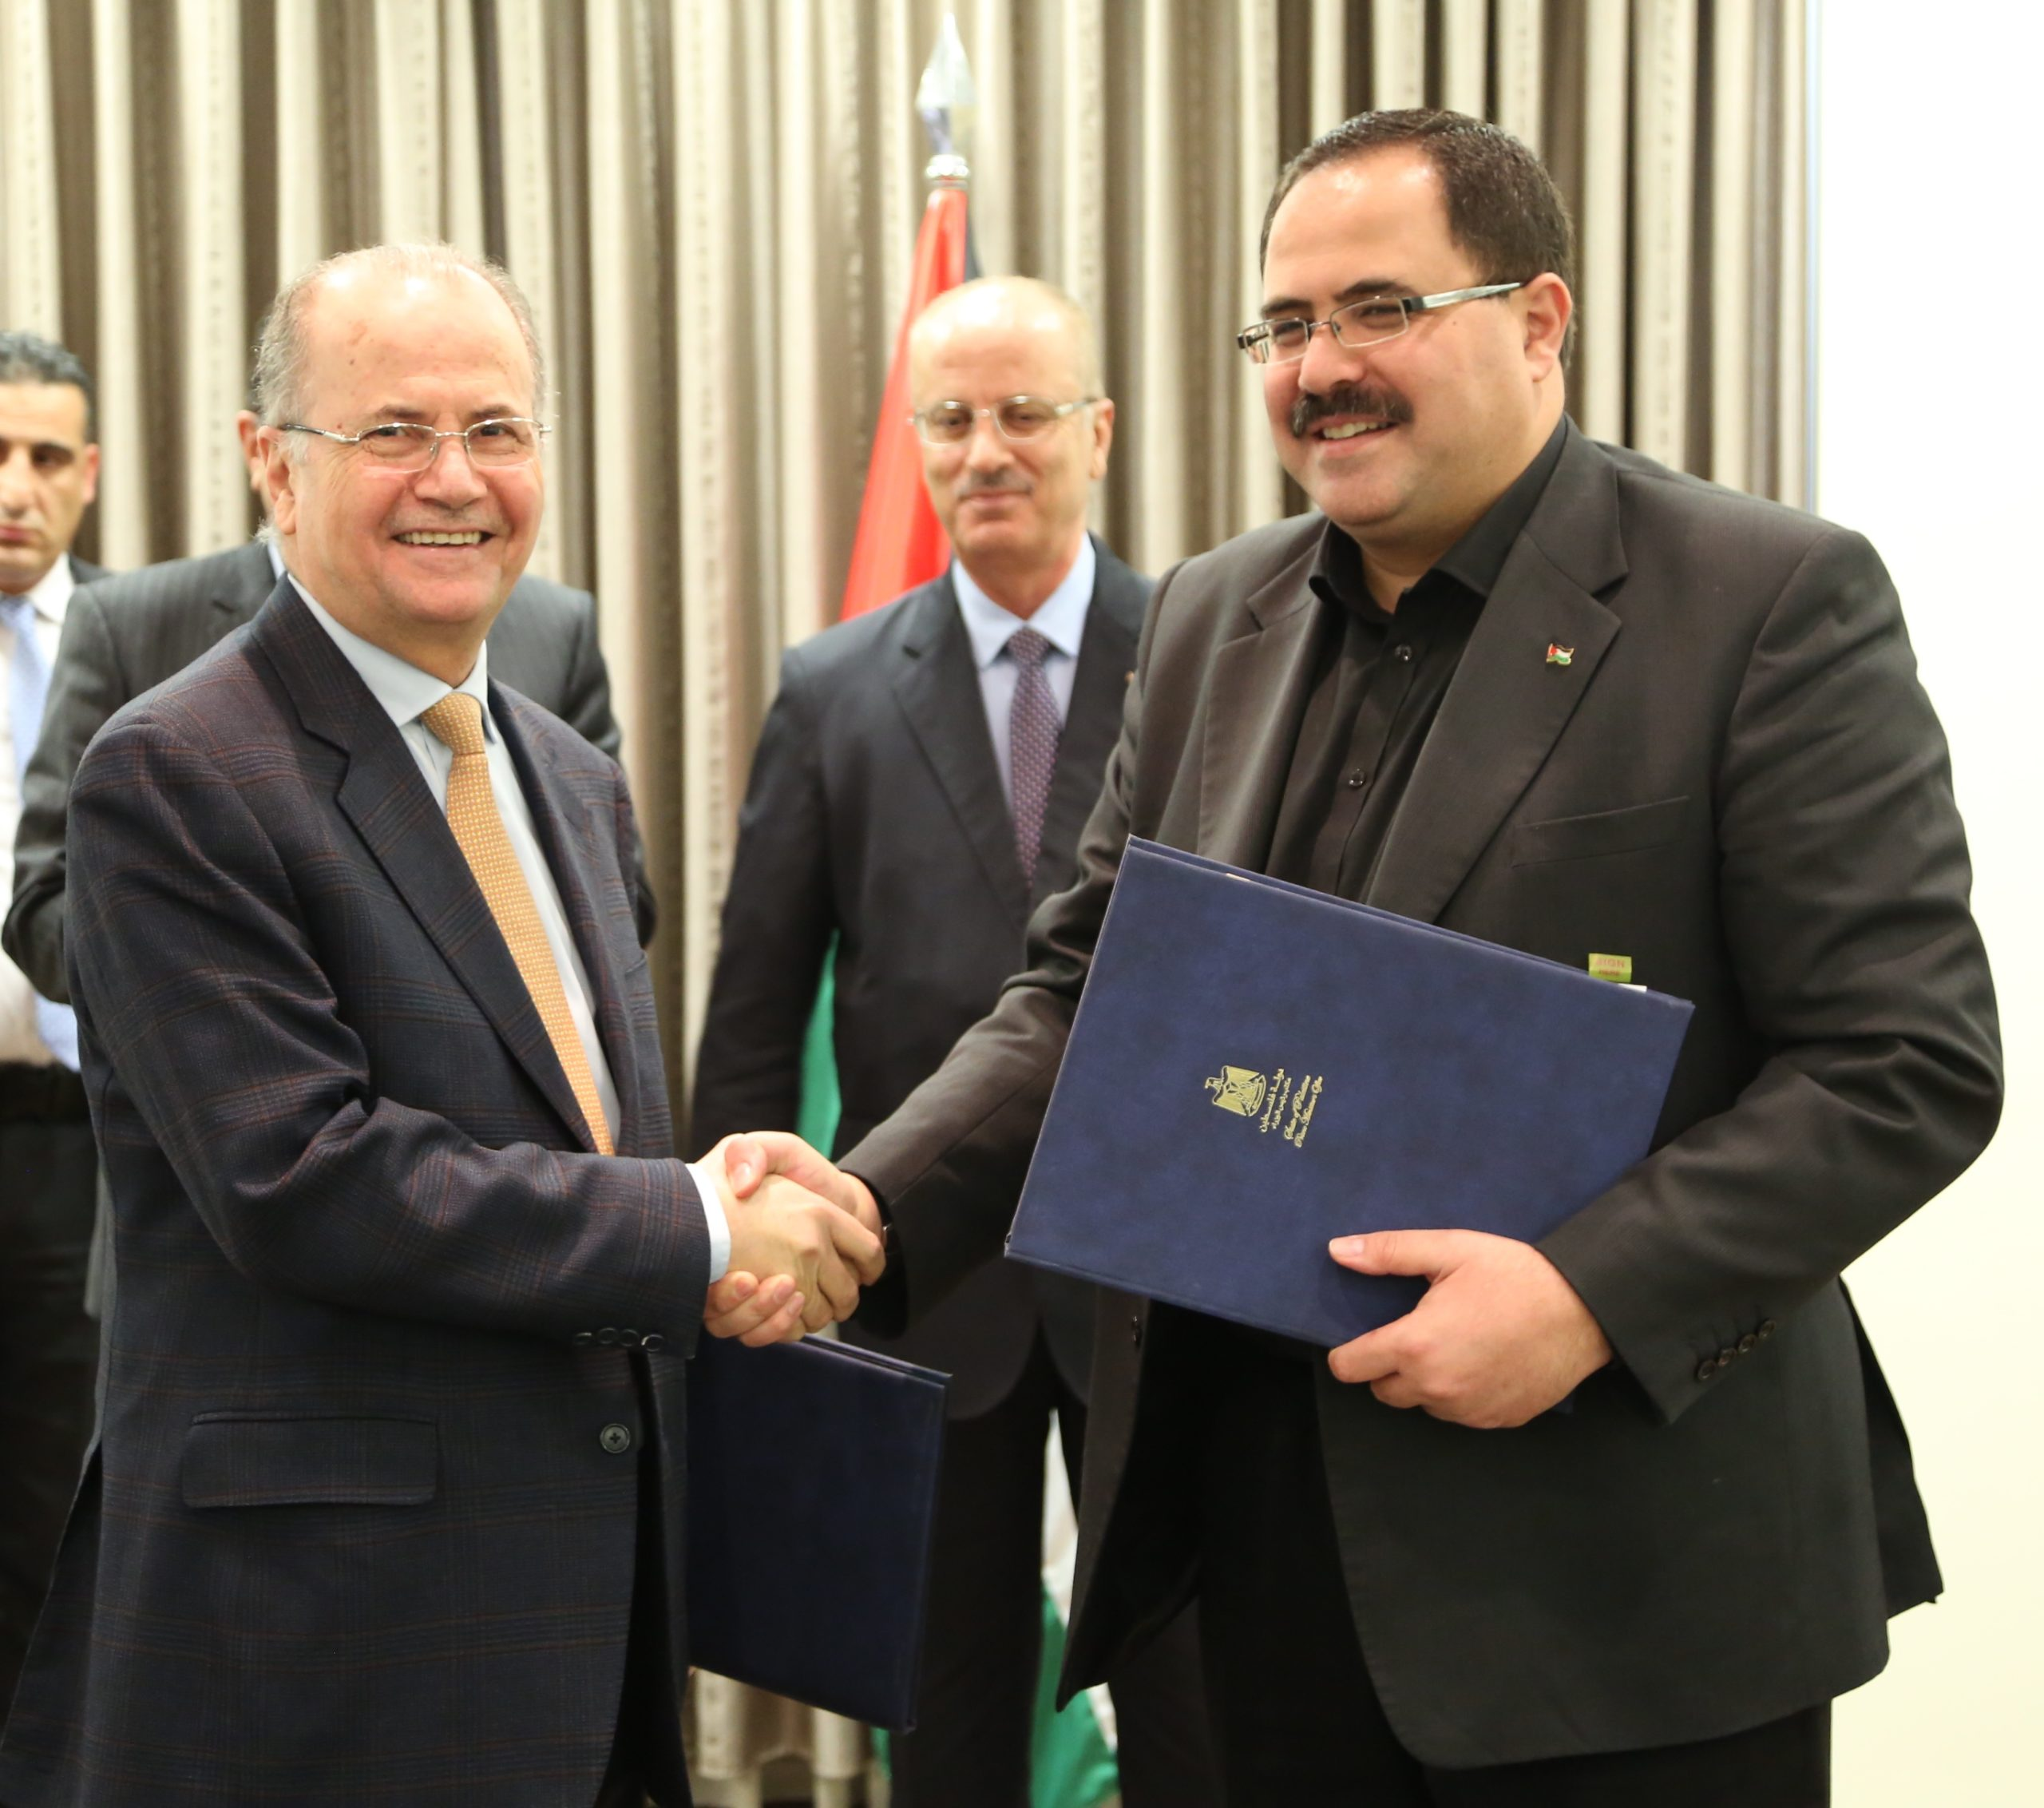 PIF Chairman Dr. Mohammad Mustafa with Palestinian Ministry of Education and Higher Education Minister Sabri Sidem. Image: PIF